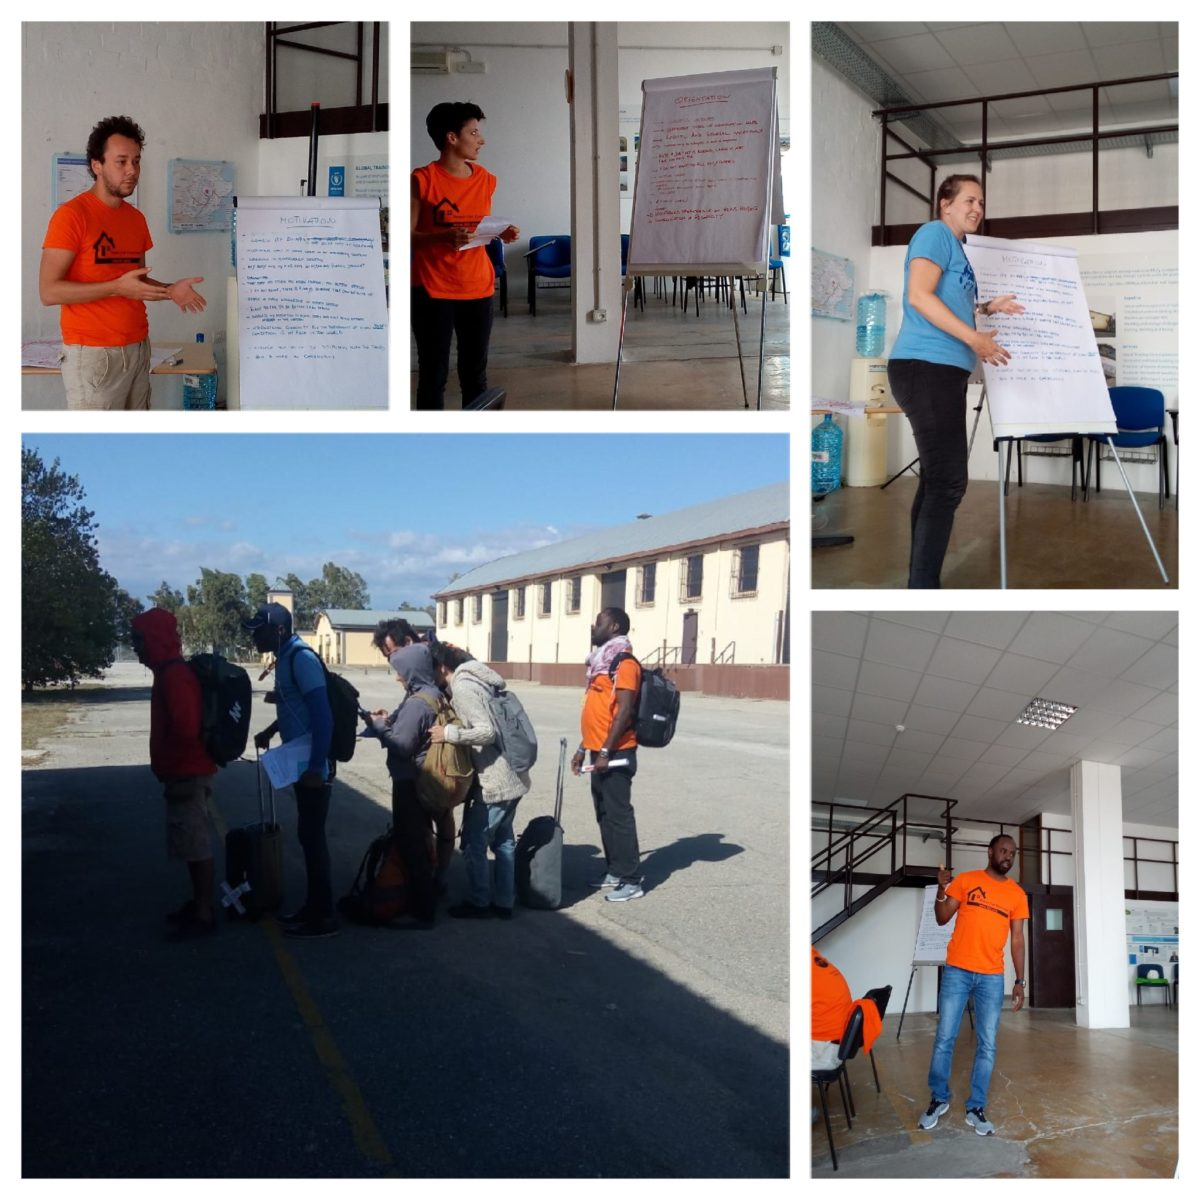 Dal 25 al 28 Settembre 2018, i fellow del Master HOPE – Humanitarian Operations in Emergencies sono stati impegnati in una Field Experience nella base UNHRD di Brindisi.